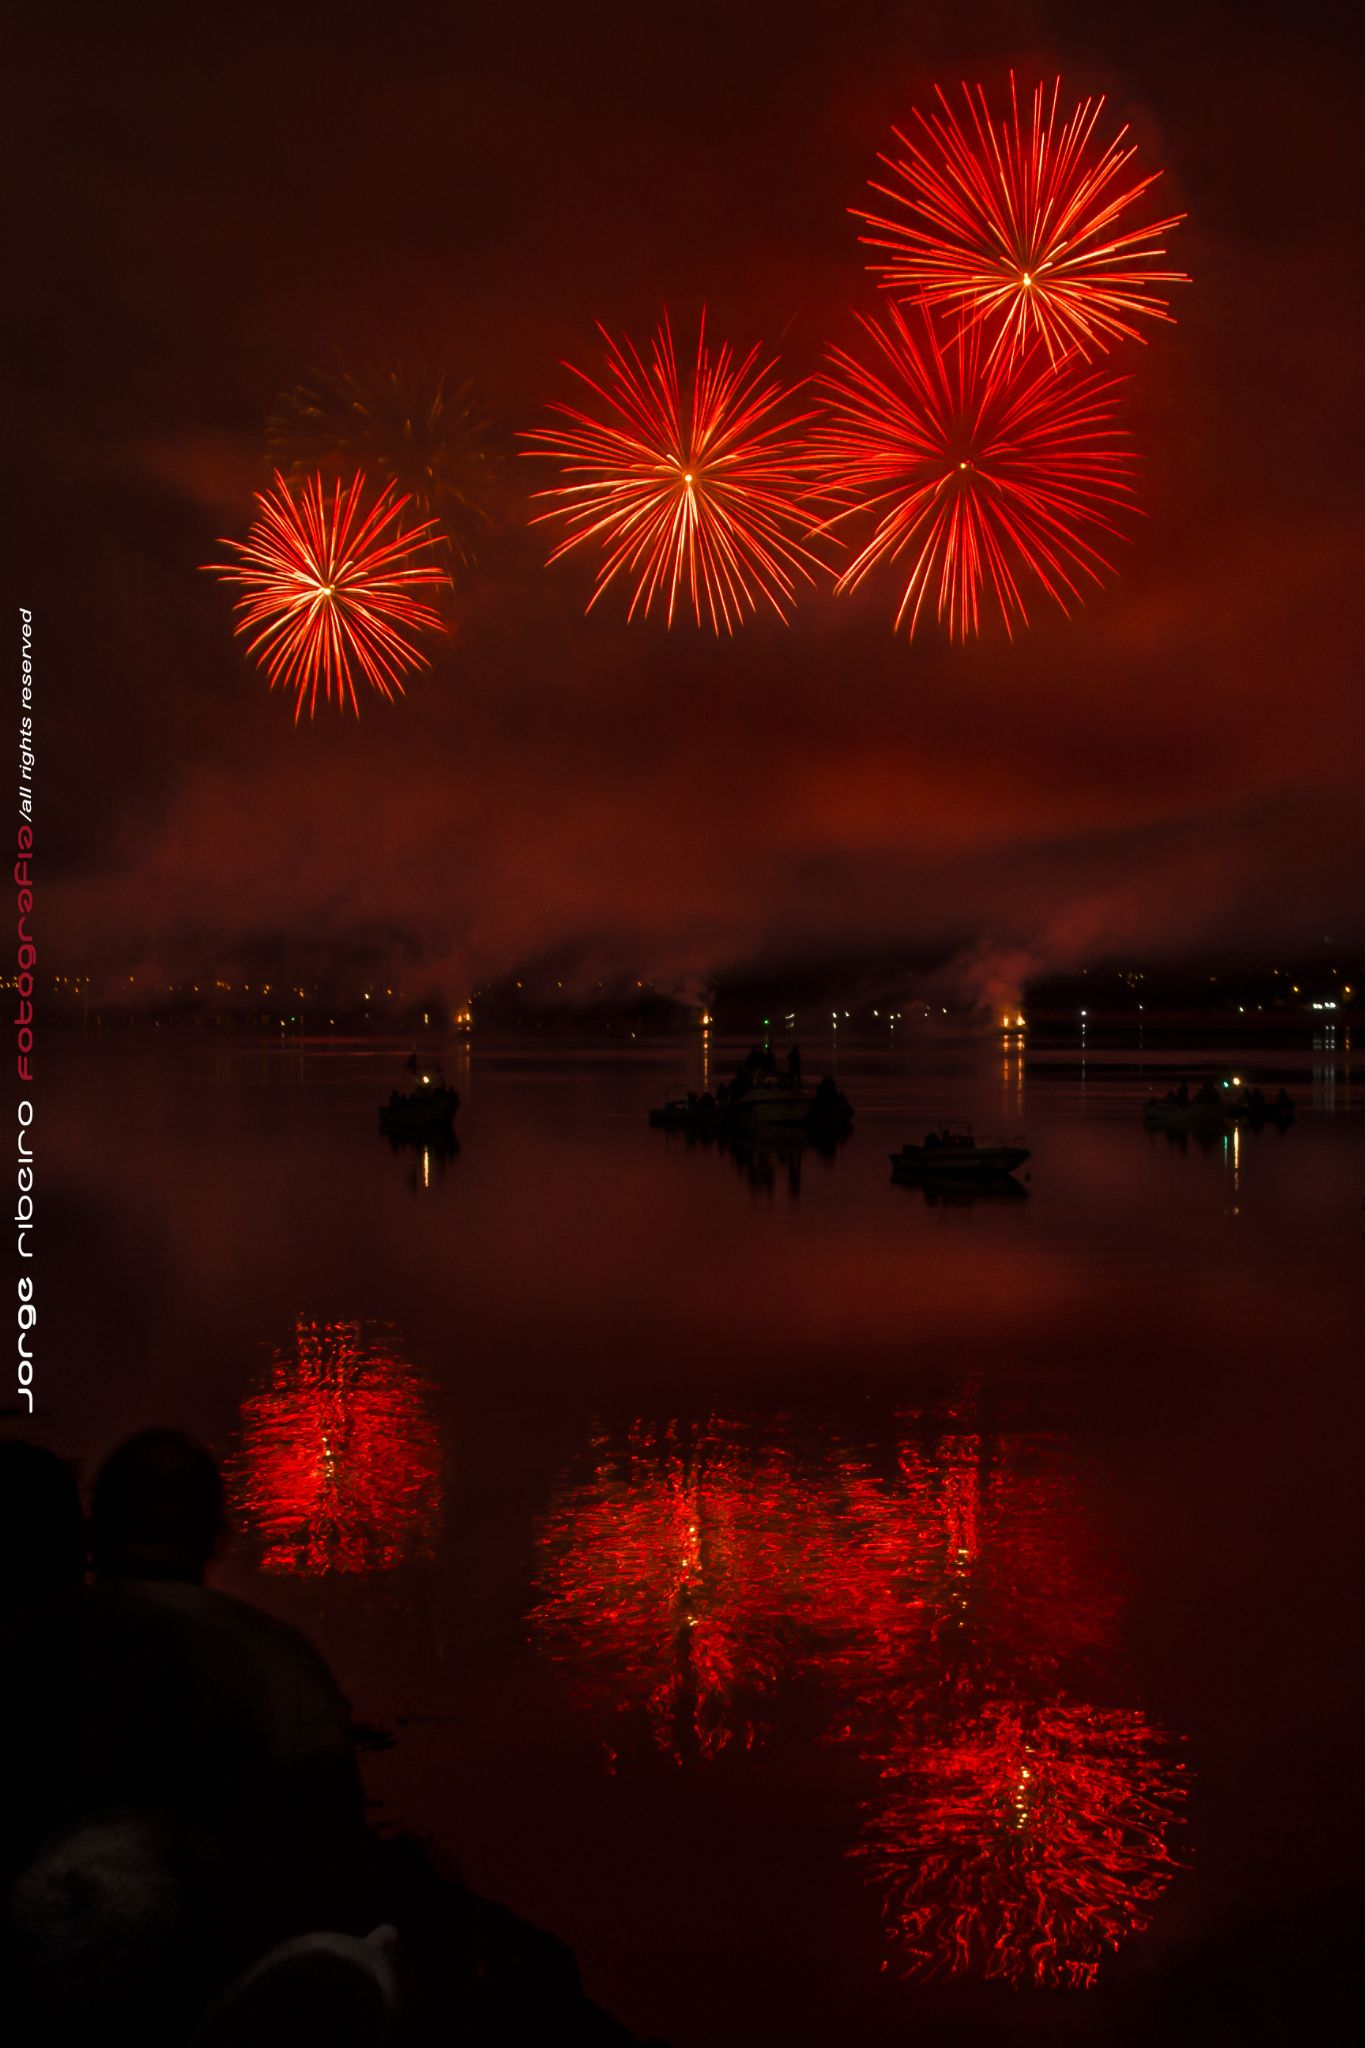 Red fireworks by franciscojorge.dominguesribeiro